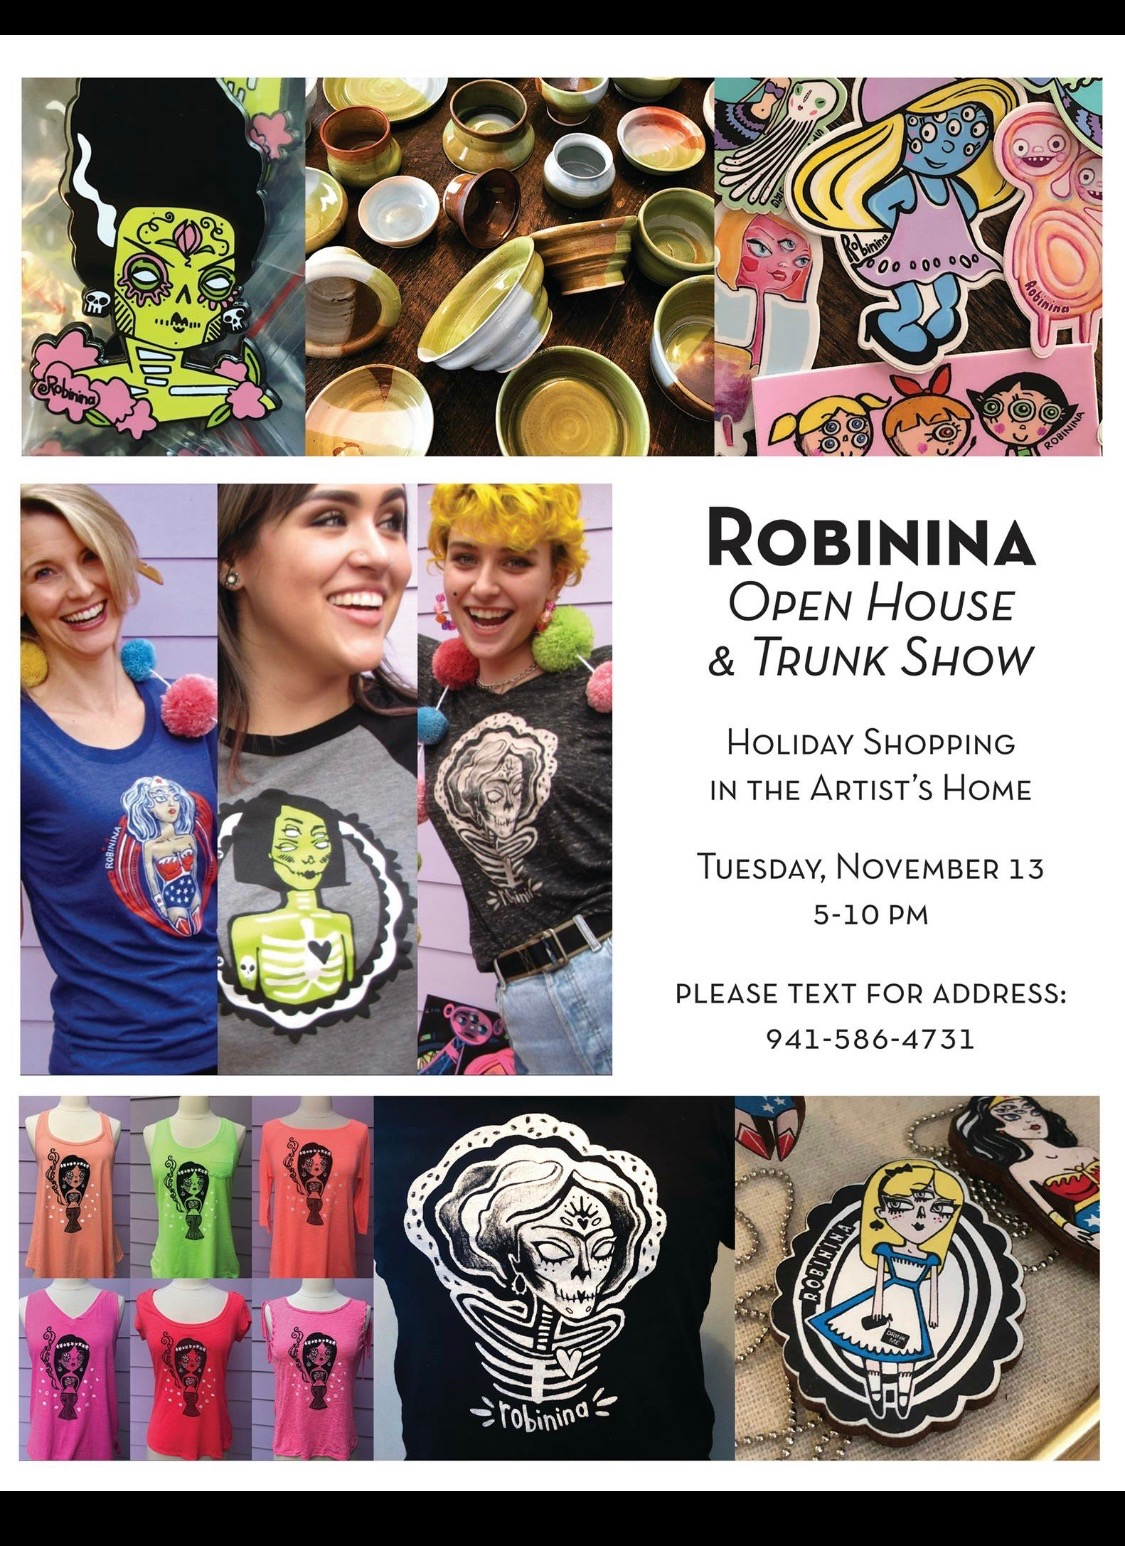 Robinina open house and trunk show, November 13, text 941-586-4731 for address